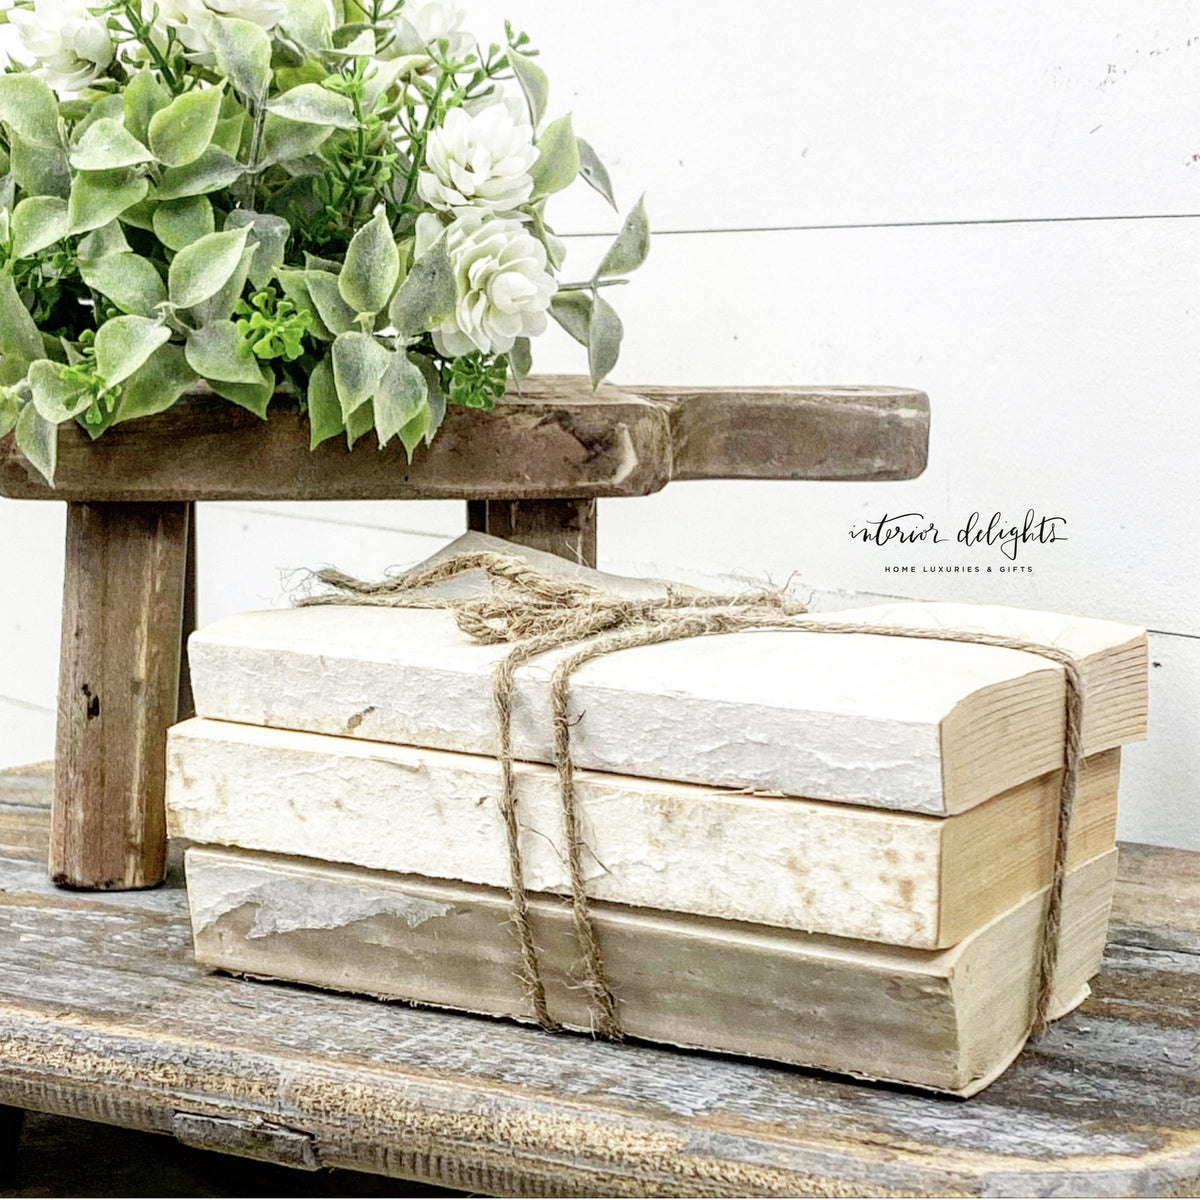 Reclaimed Book Bundles - Interior Delights Parker